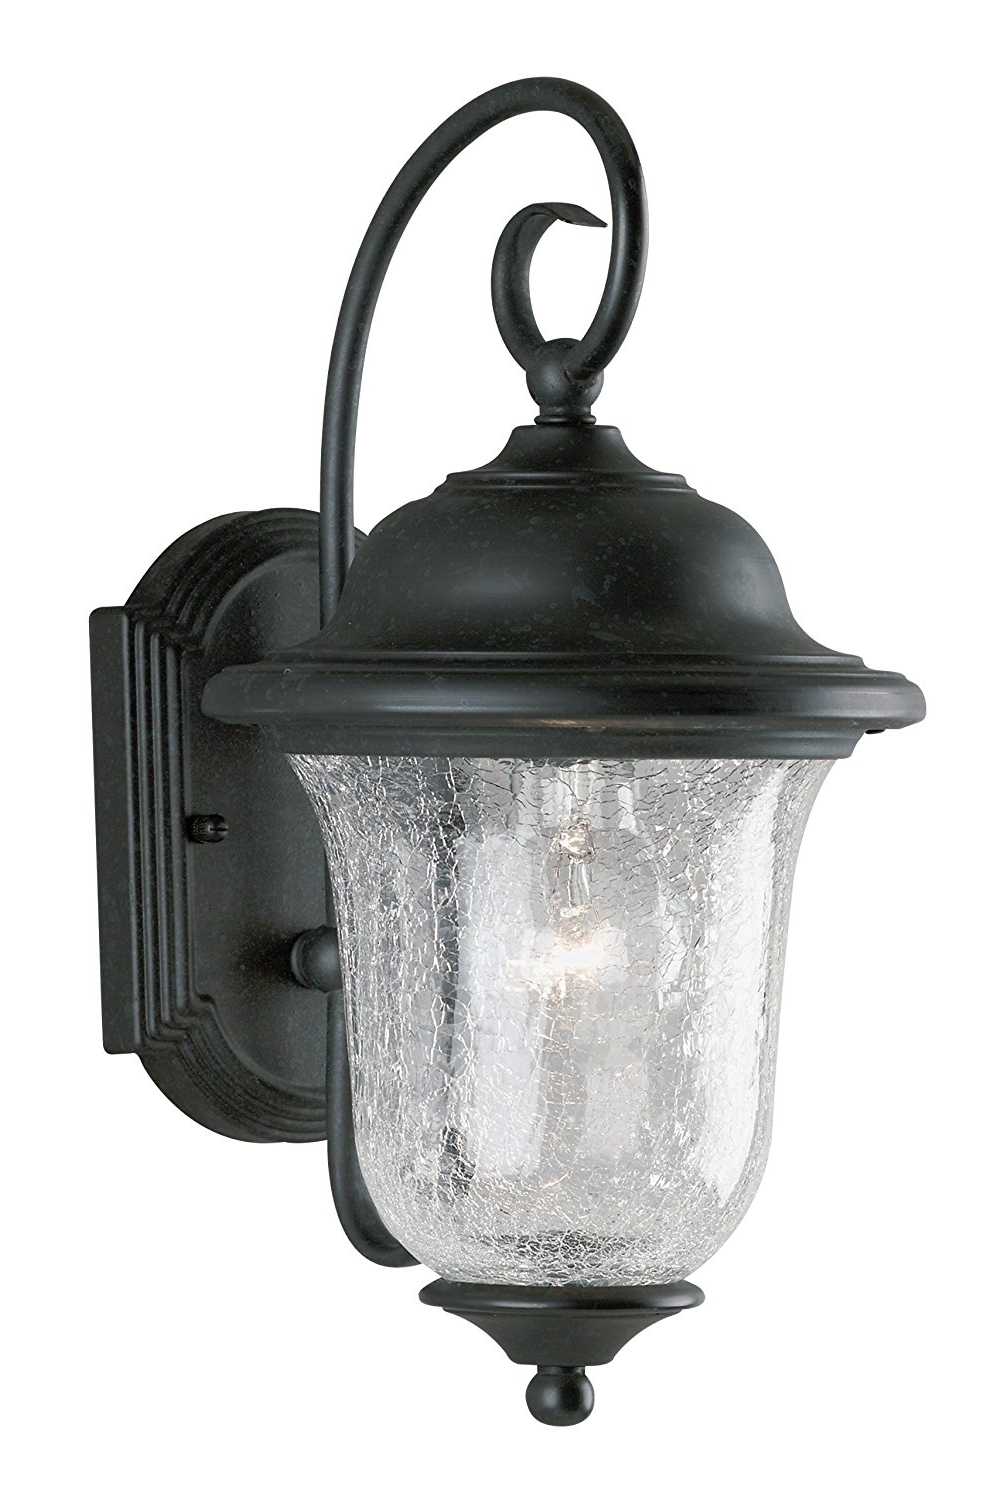 Favorite Vintage Exterior Lighting Outdoor Porch Light With Outlet Gfci Wall With Regard To Outdoor Lighting Onion Lanterns (Gallery 18 of 20)